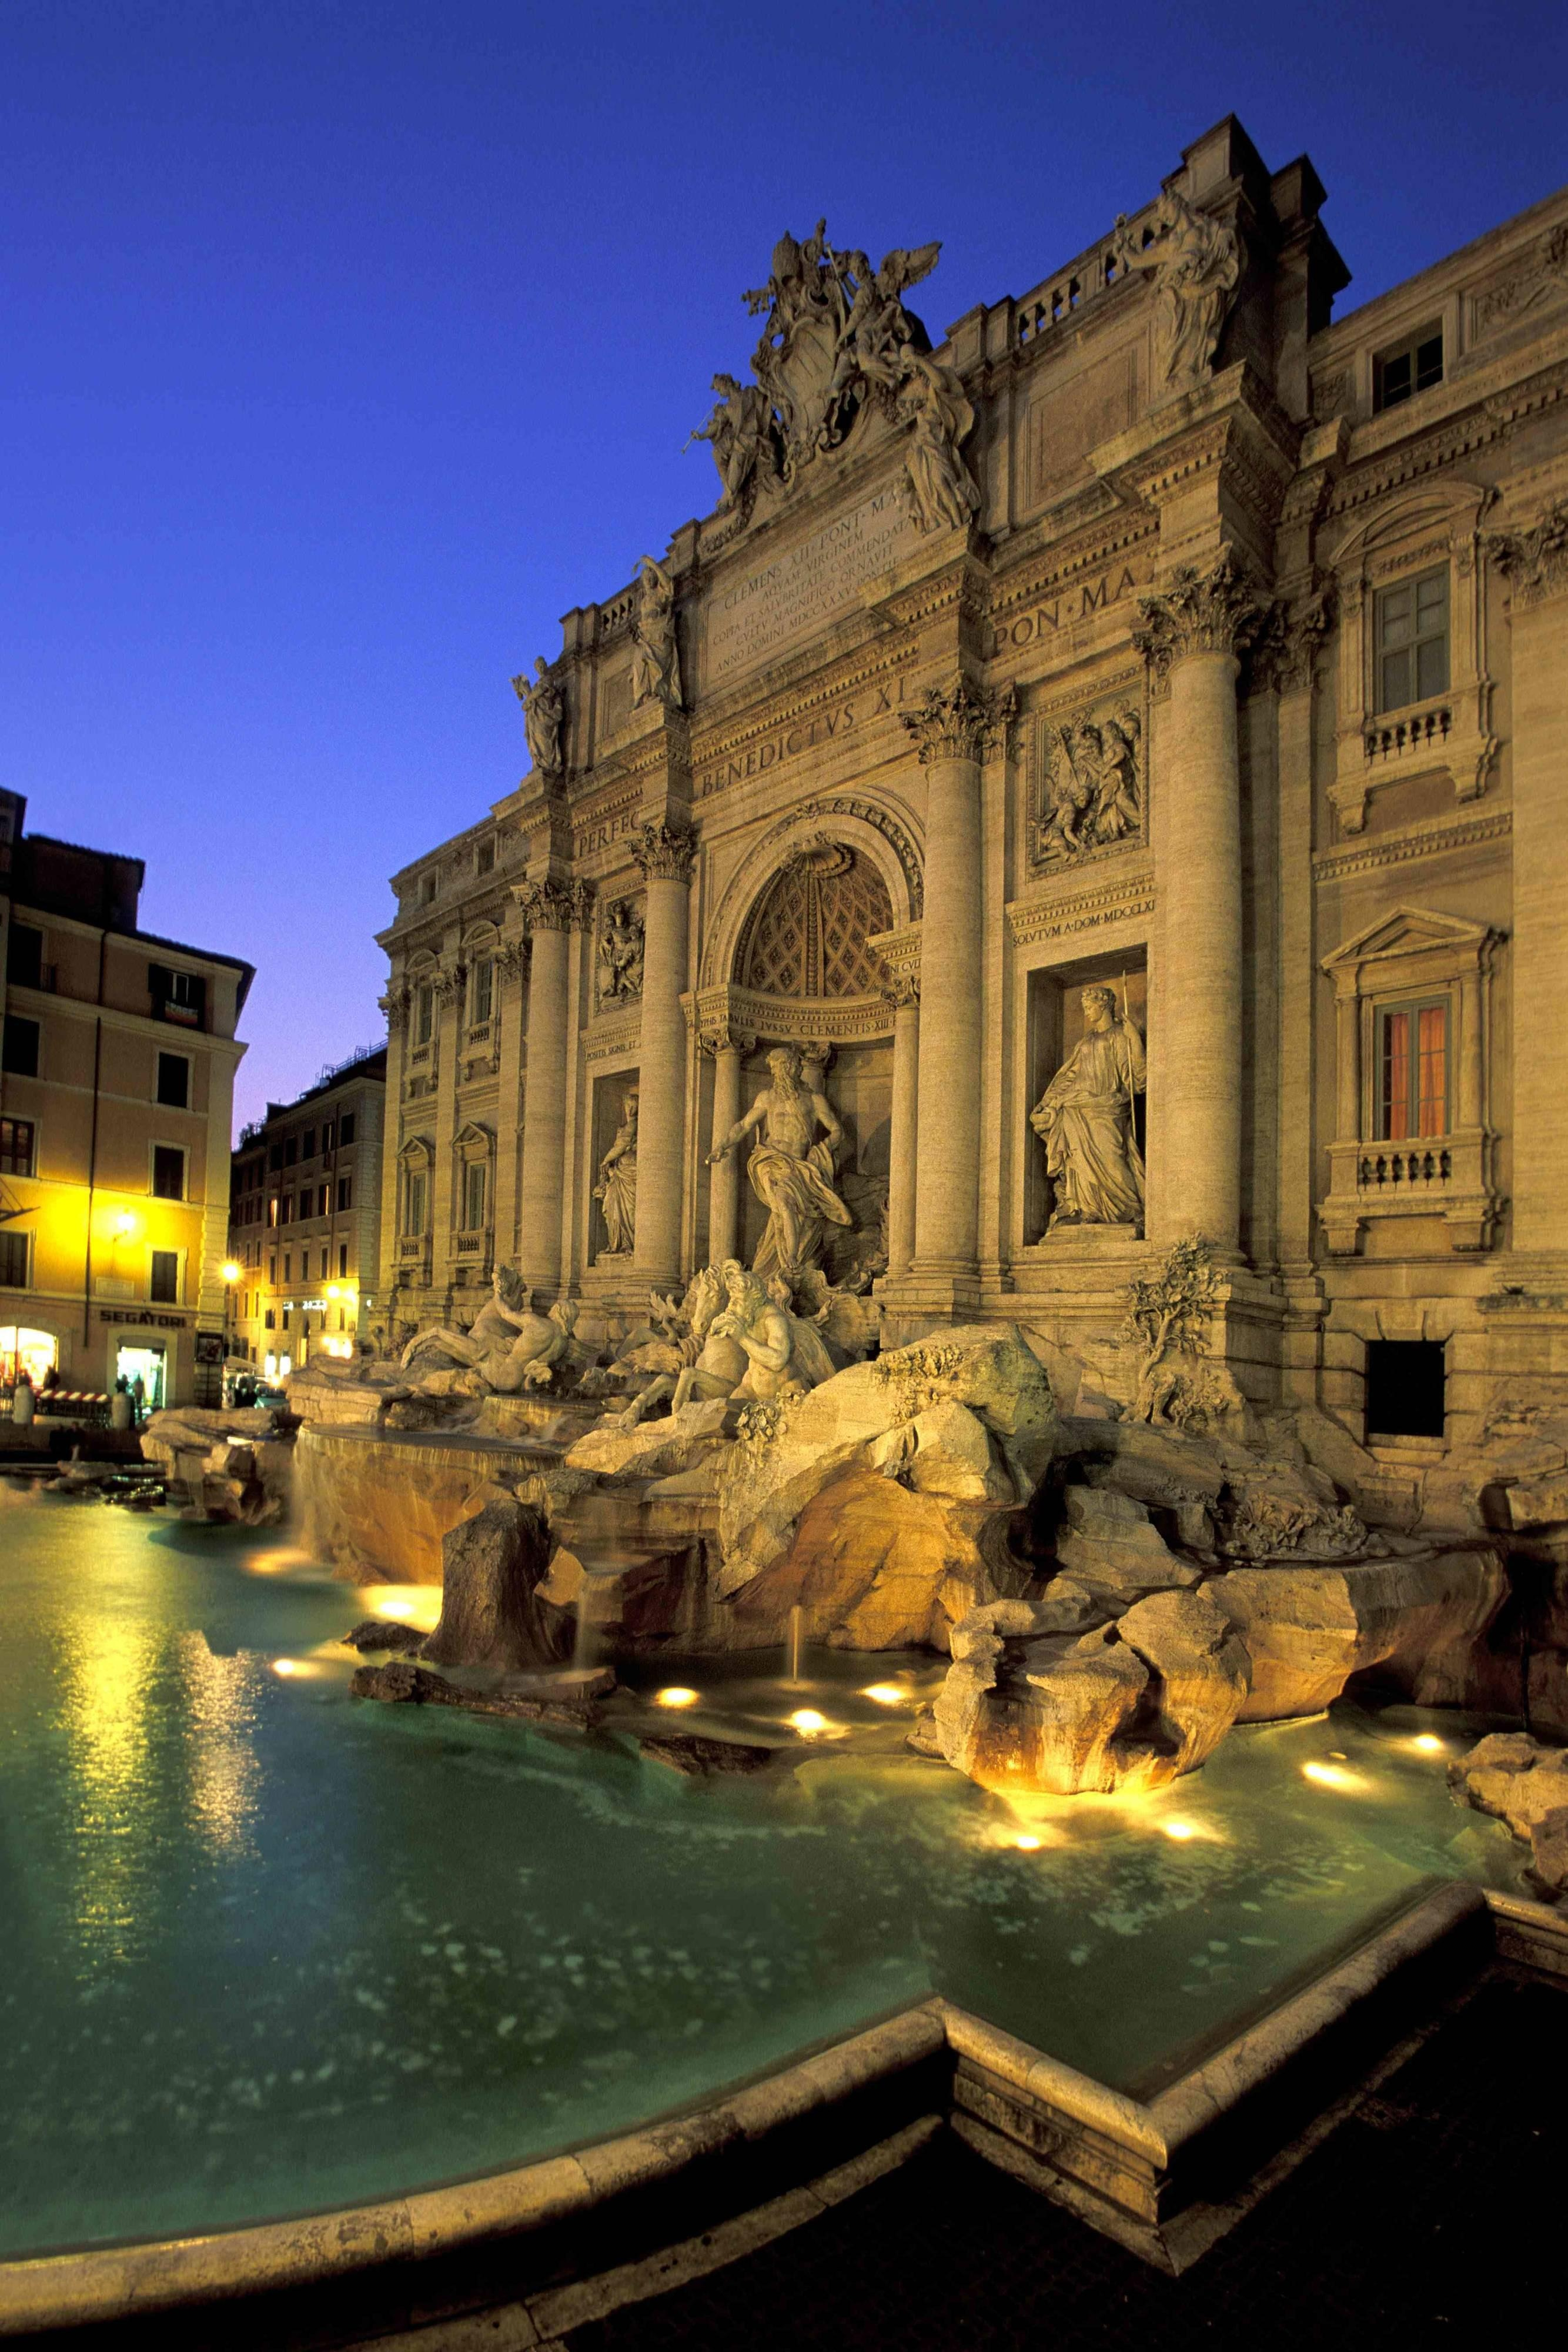 Fontana di Trevi and the Dolce Vita in Rome, Italy